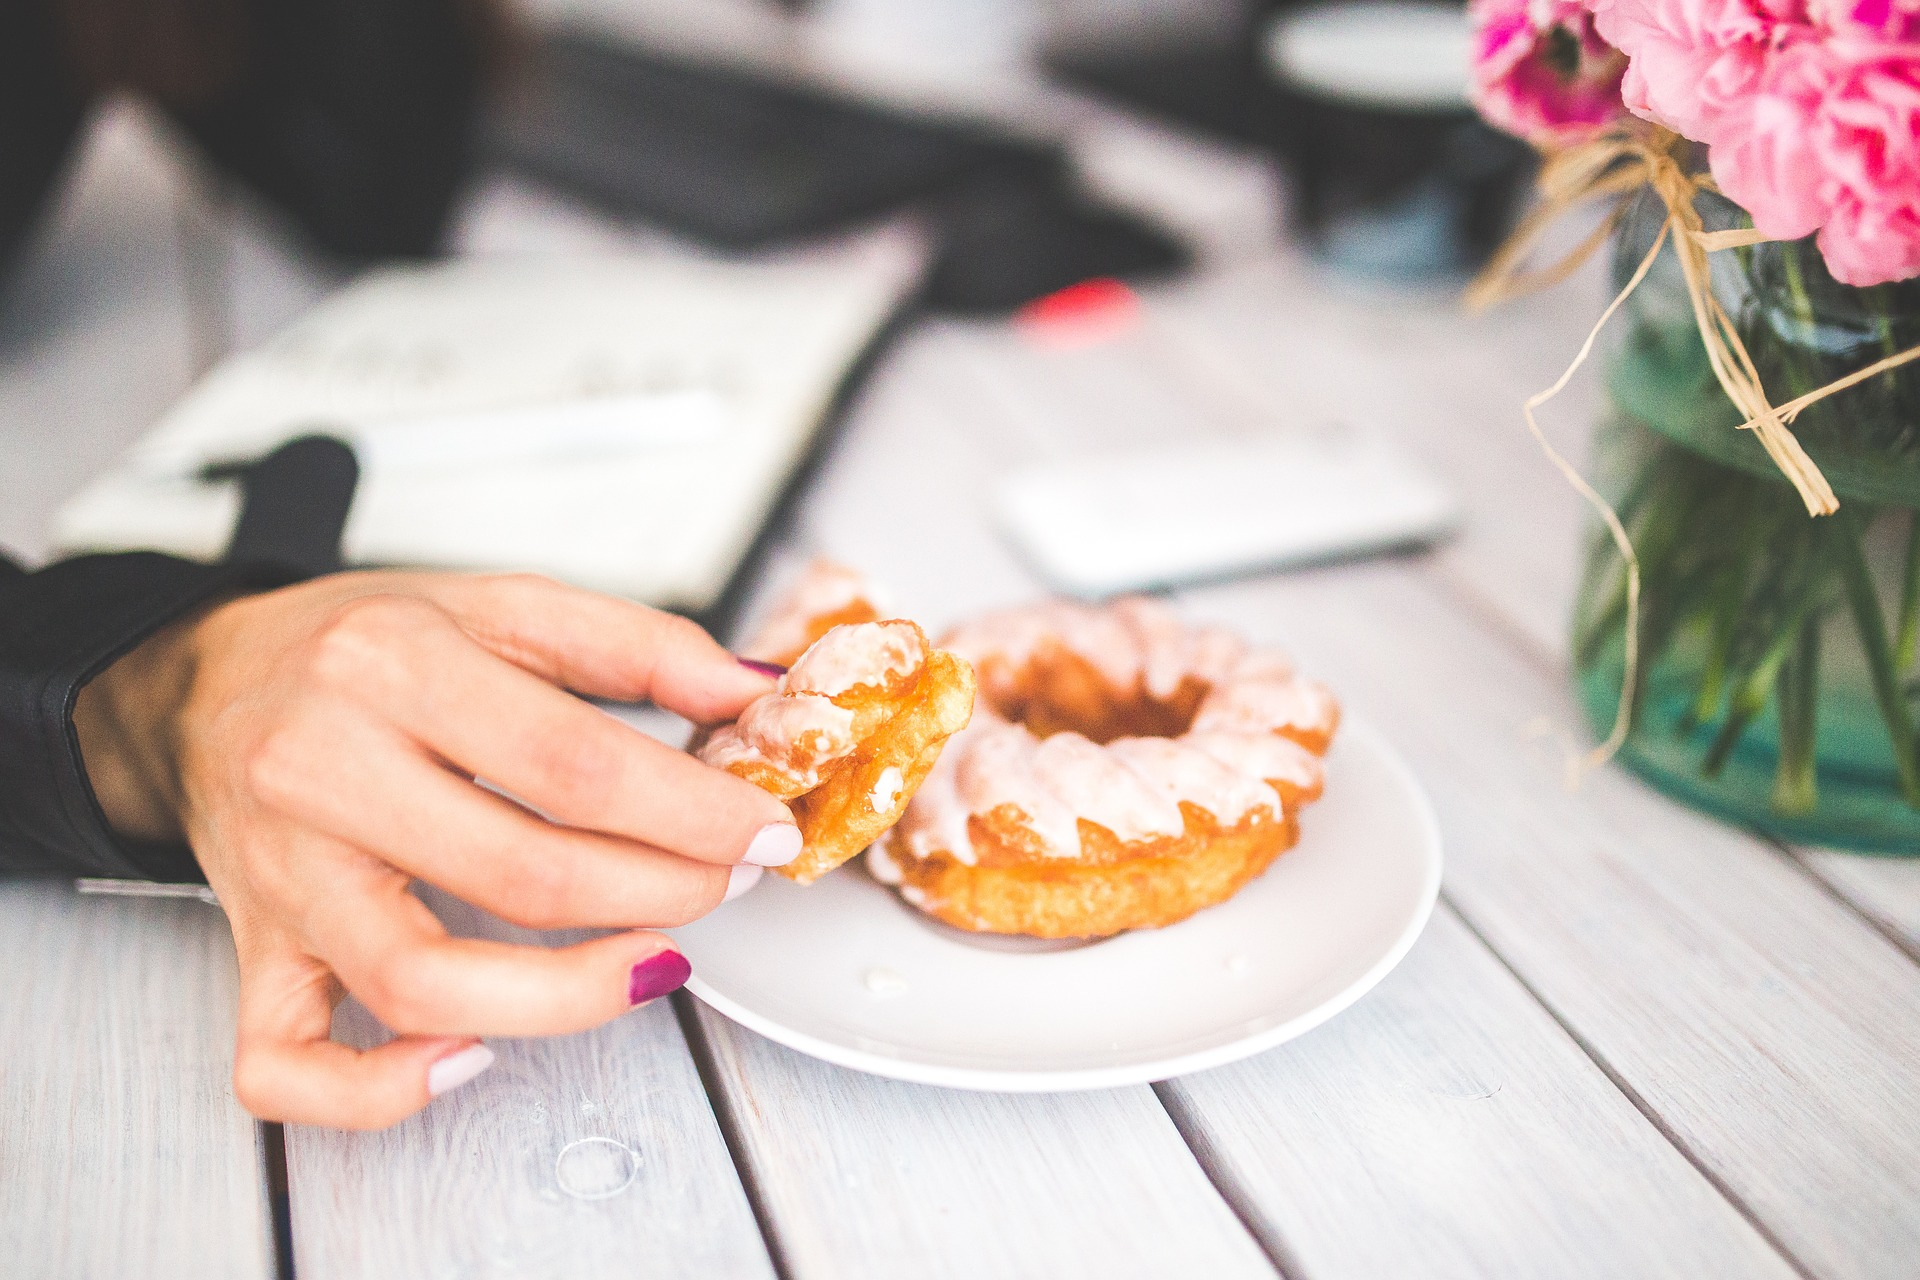 hand with a donut